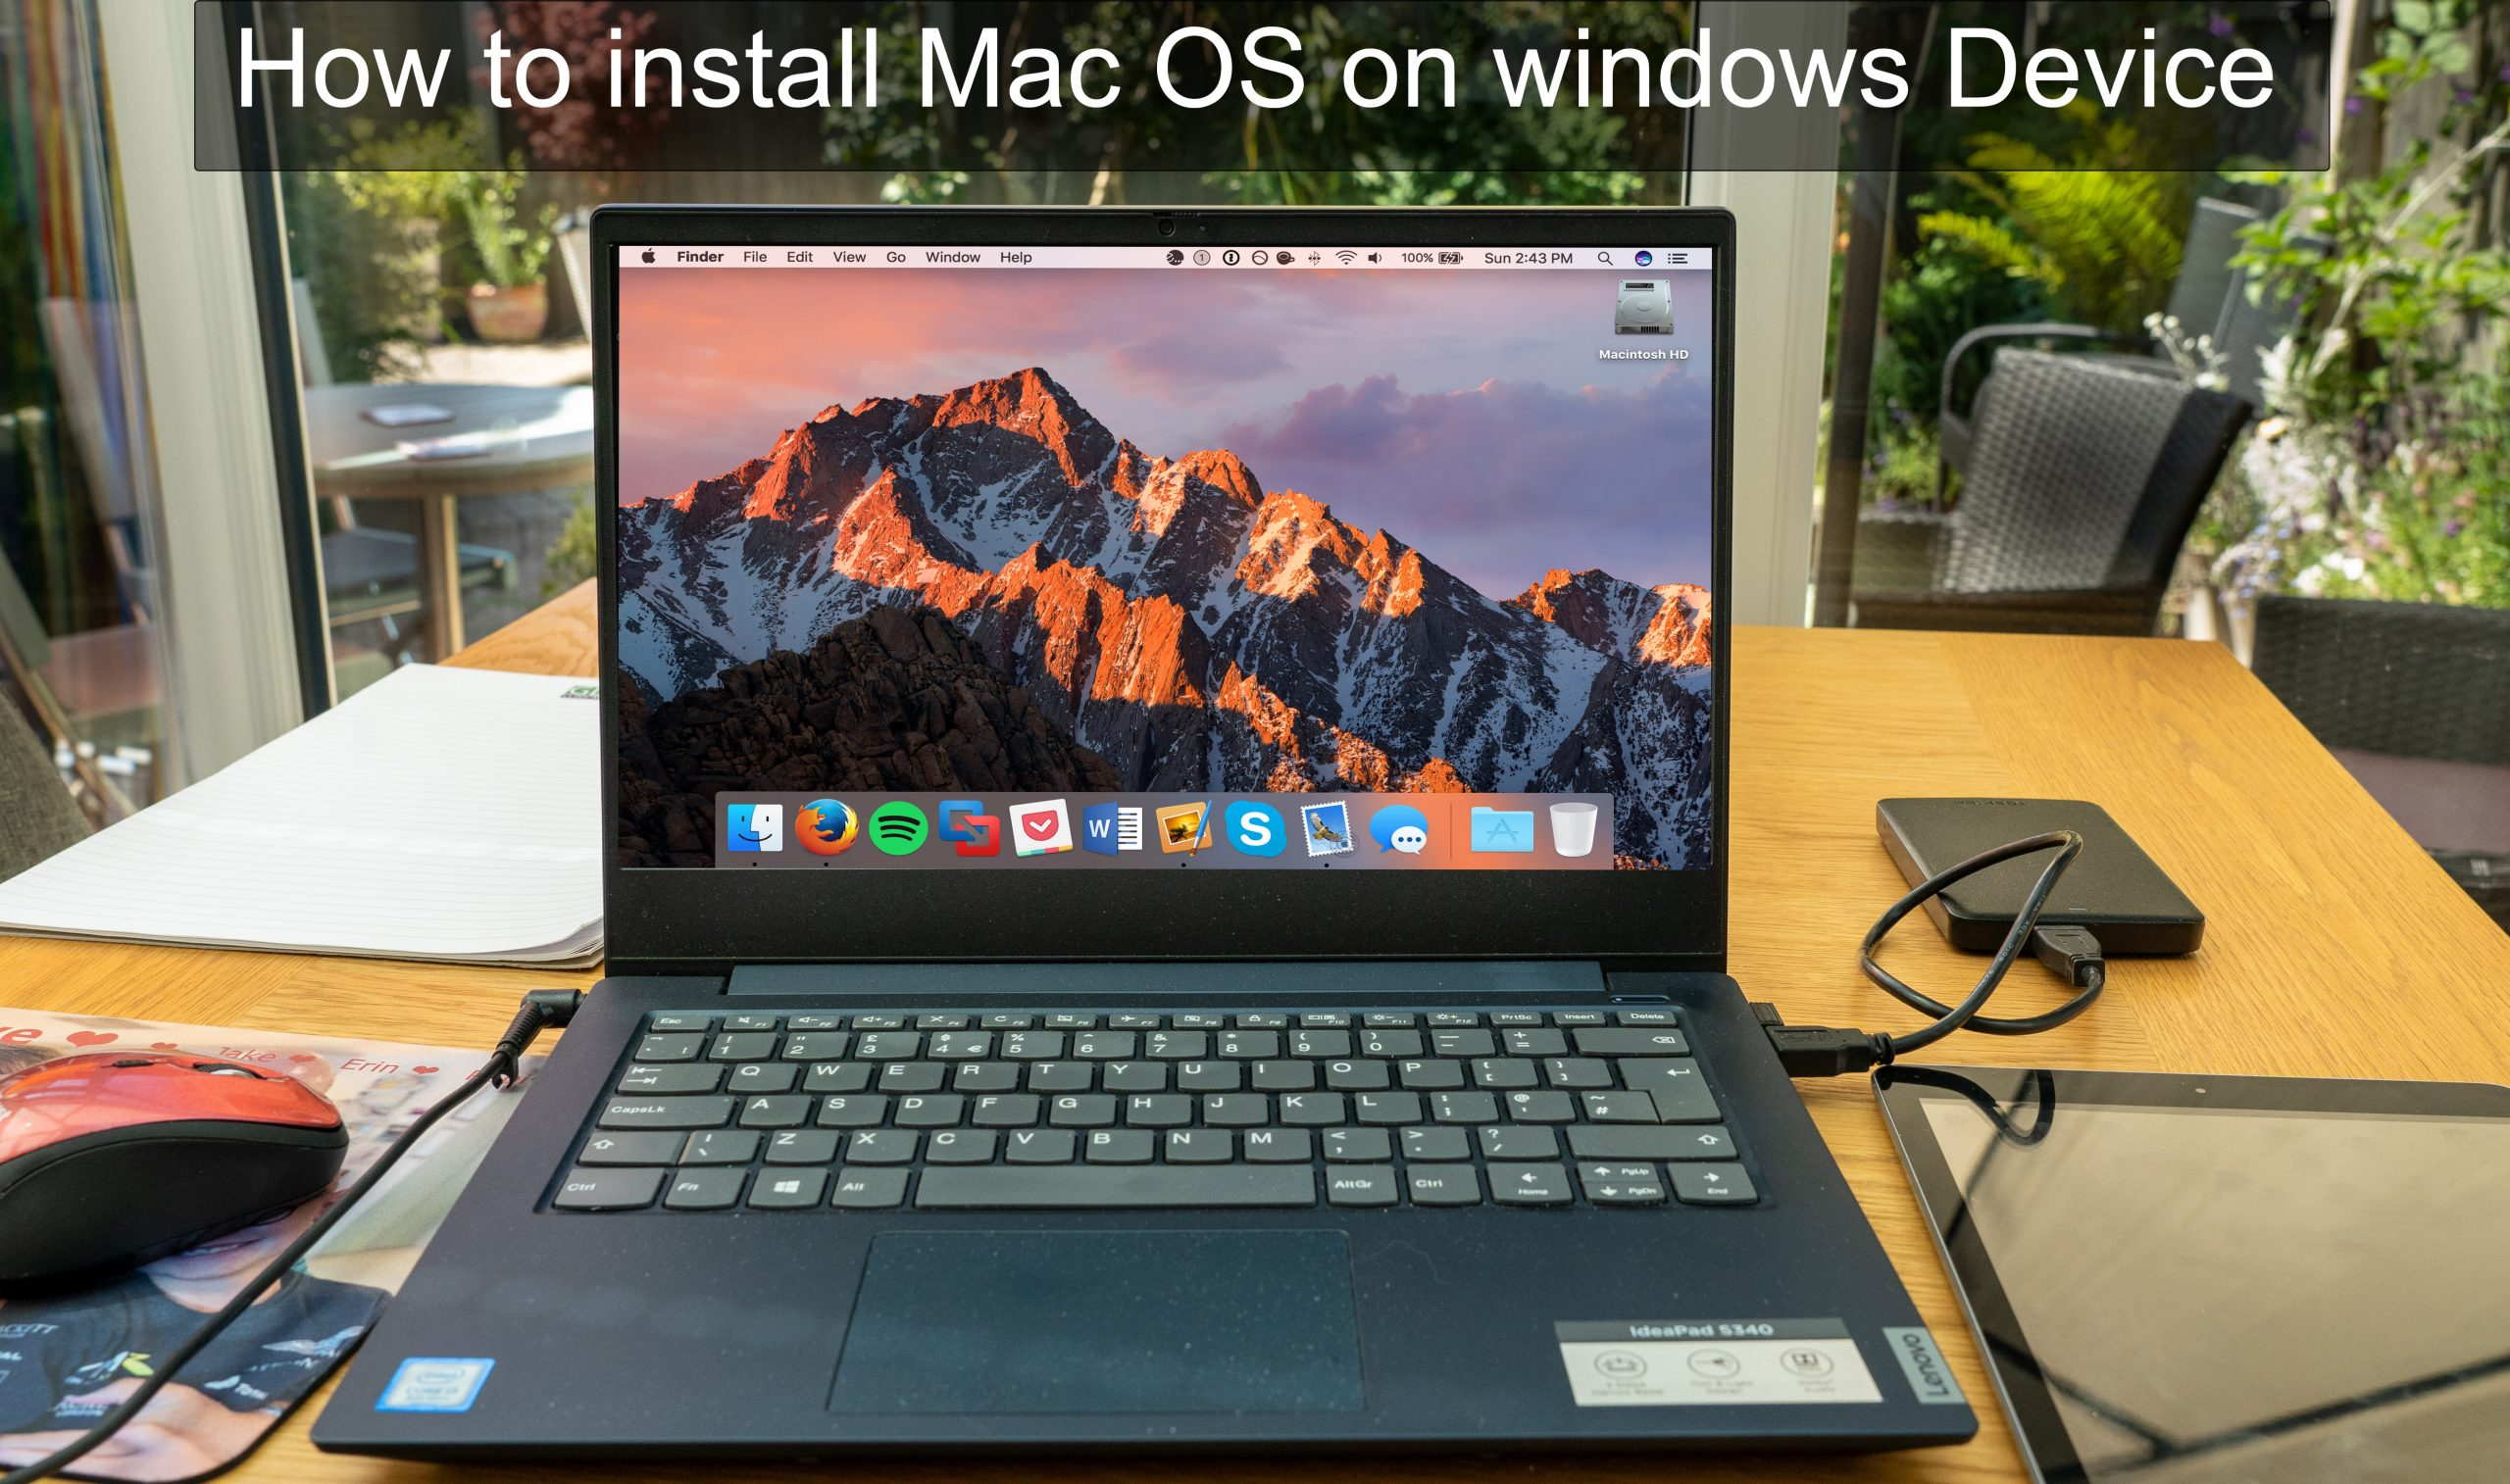 How to install Mac OS on Windows